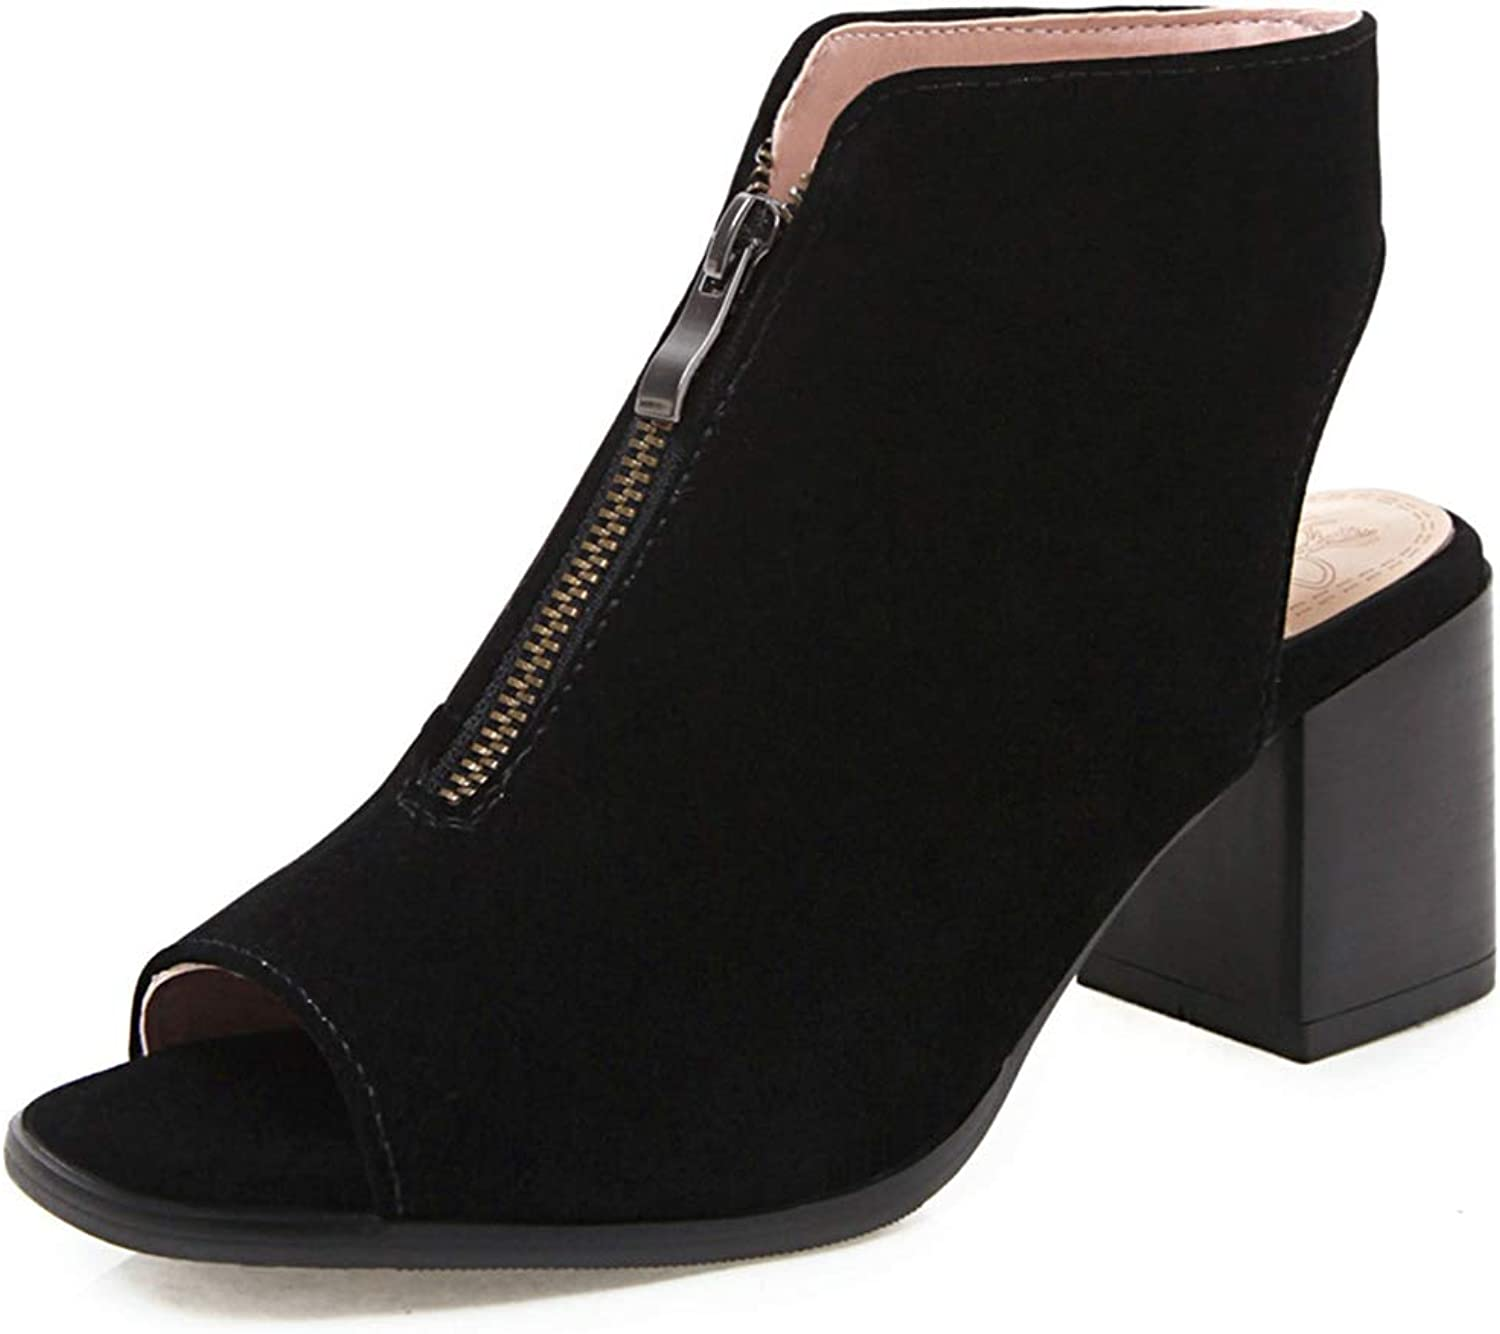 SaraIris Womens Open Toe Summer Cut Out Chunky High Heel Ankle Booties